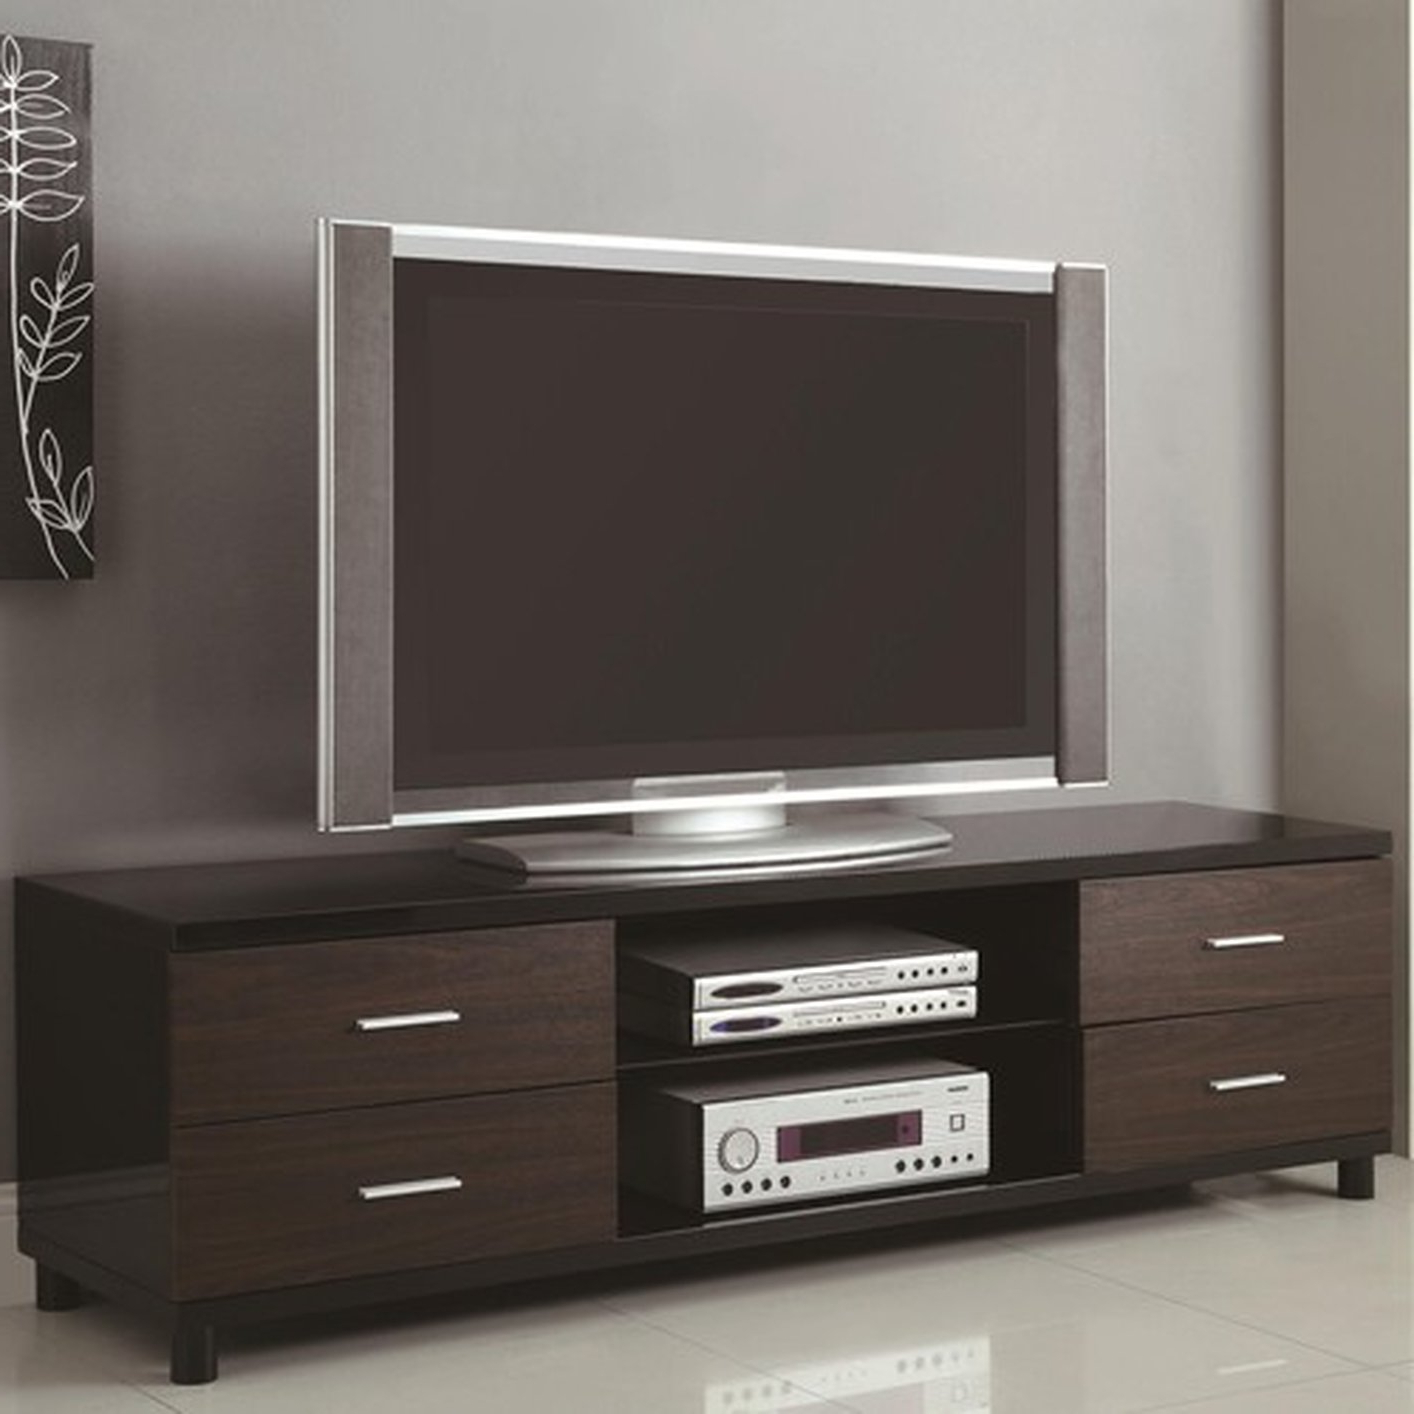 Brown Wood Tv Stand – Steal A Sofa Furniture Outlet Los Angeles Ca With Regard To Favorite Contemporary Wood Tv Stands (View 4 of 20)